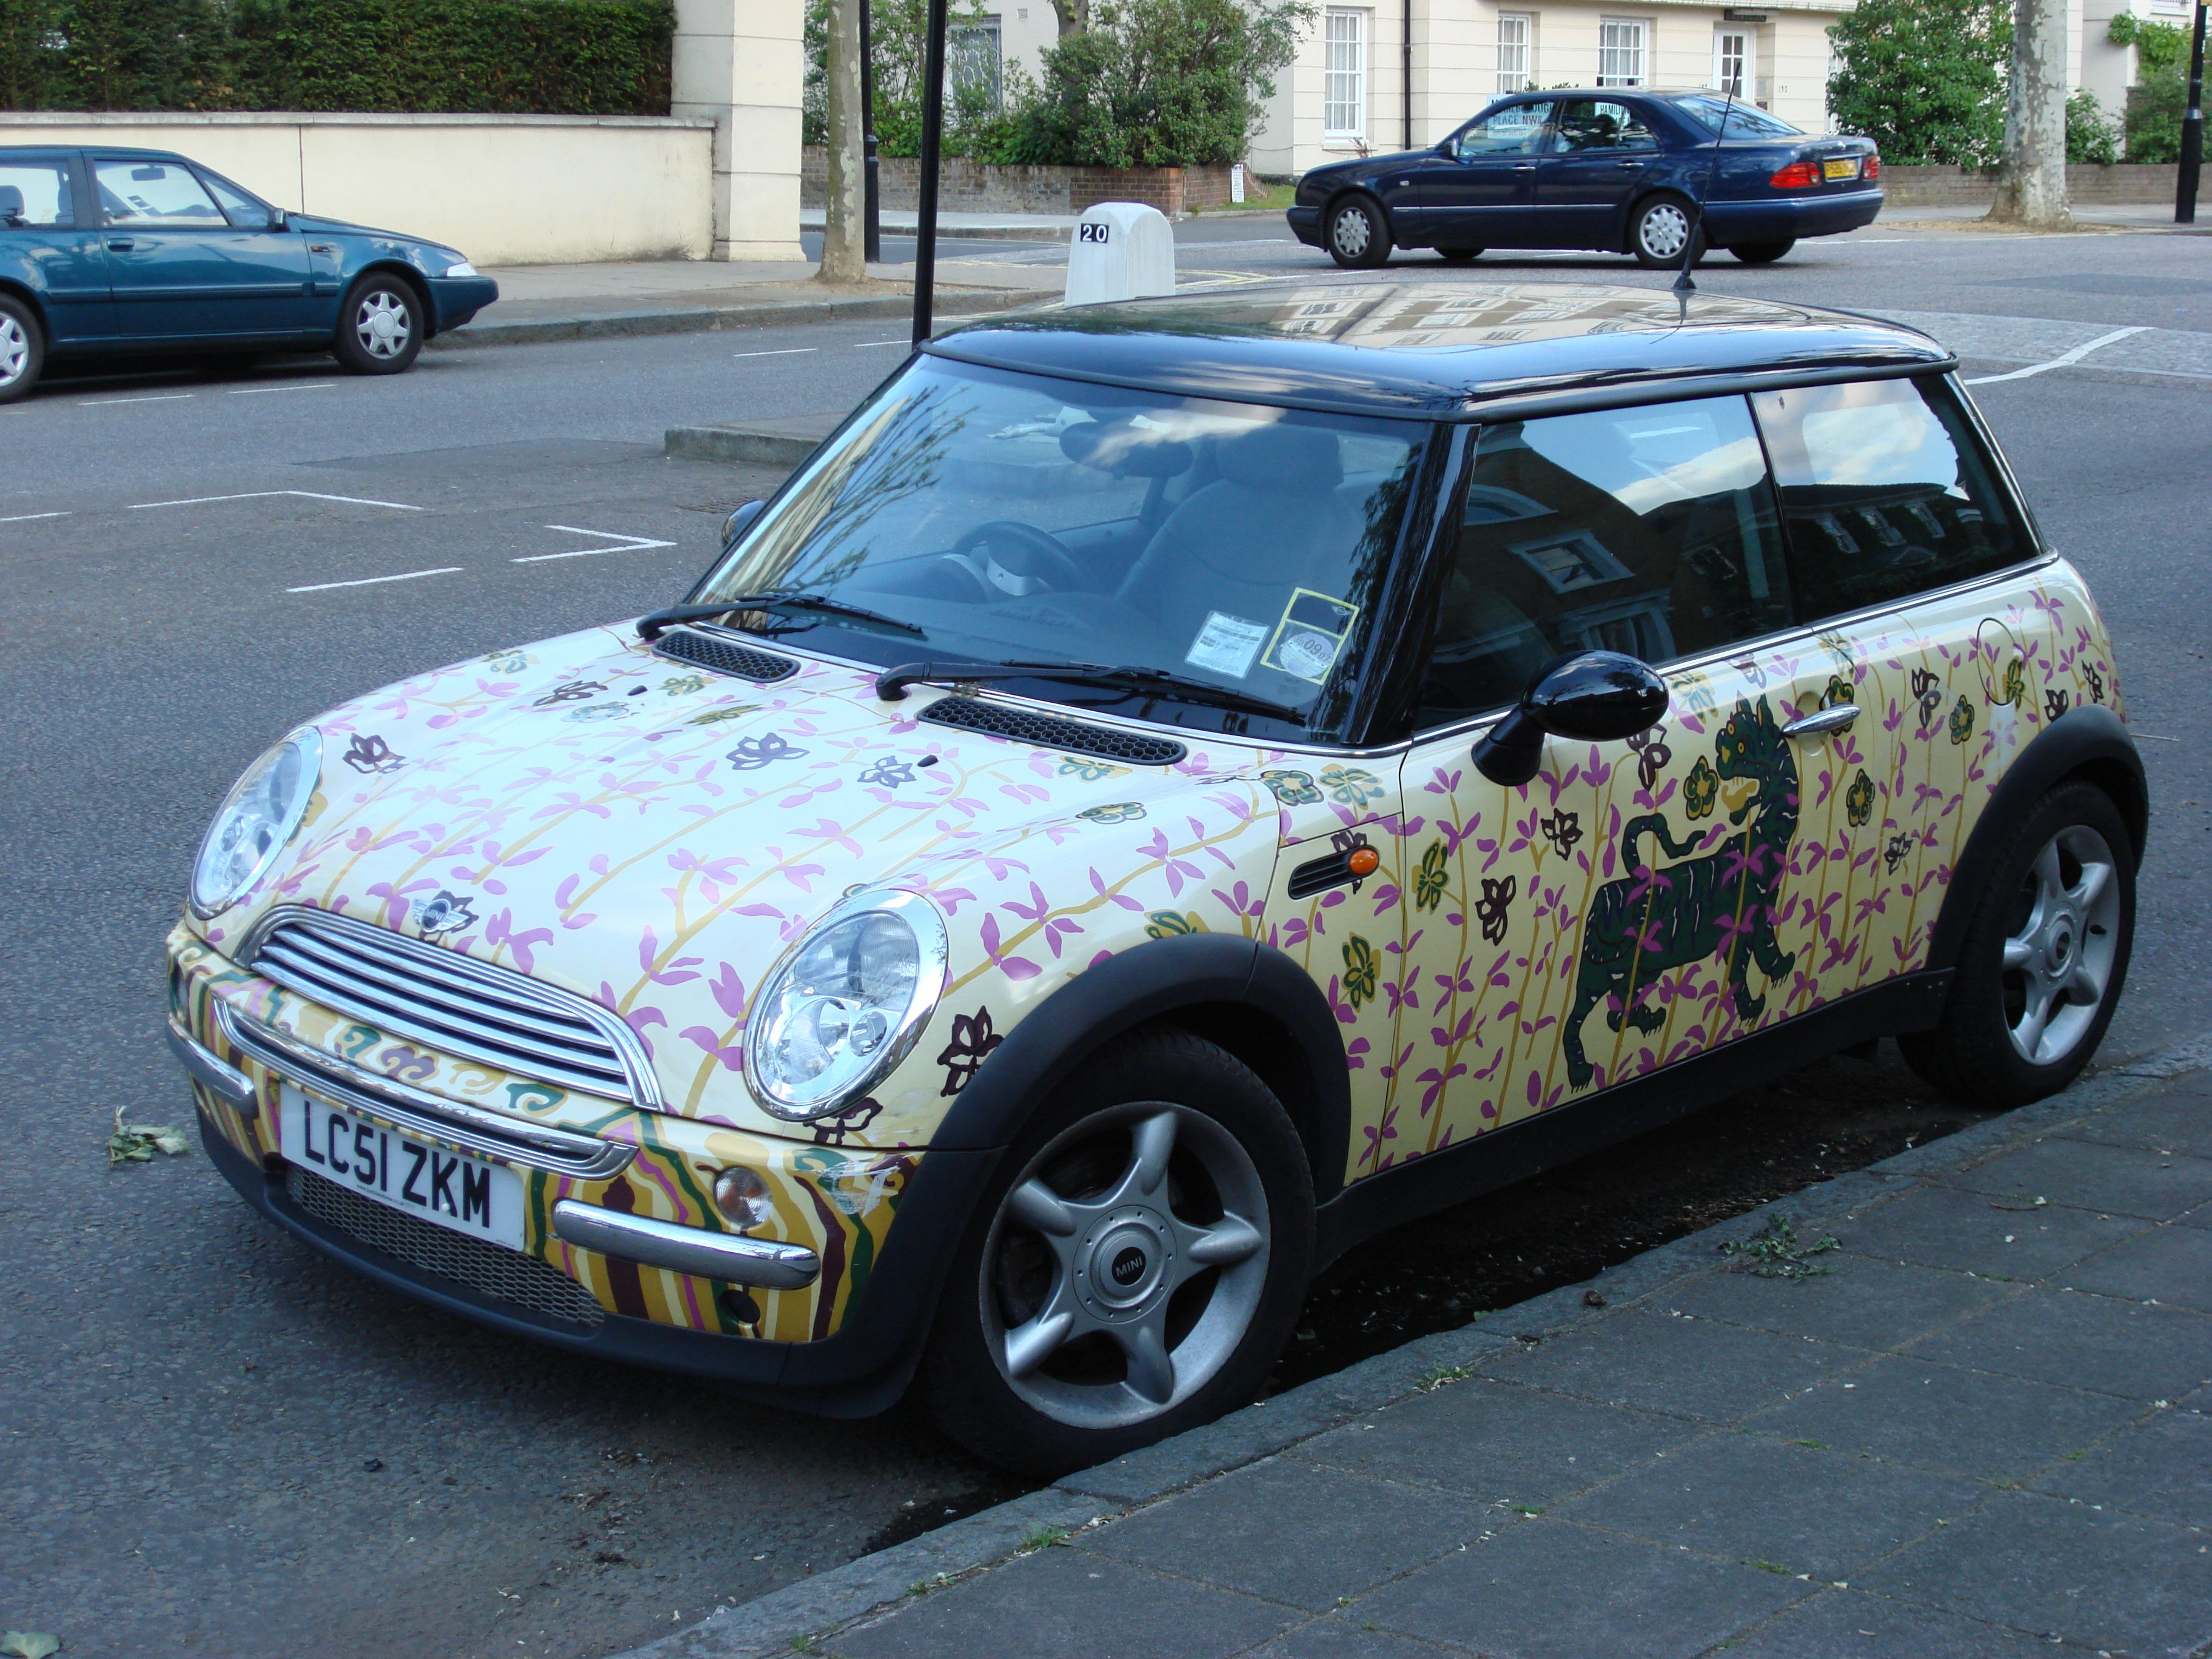 Google Image Result for http://upload.wikimedia.org/wikipedia/commons/4/48/BMW_Mini_Cooper_02.jpg